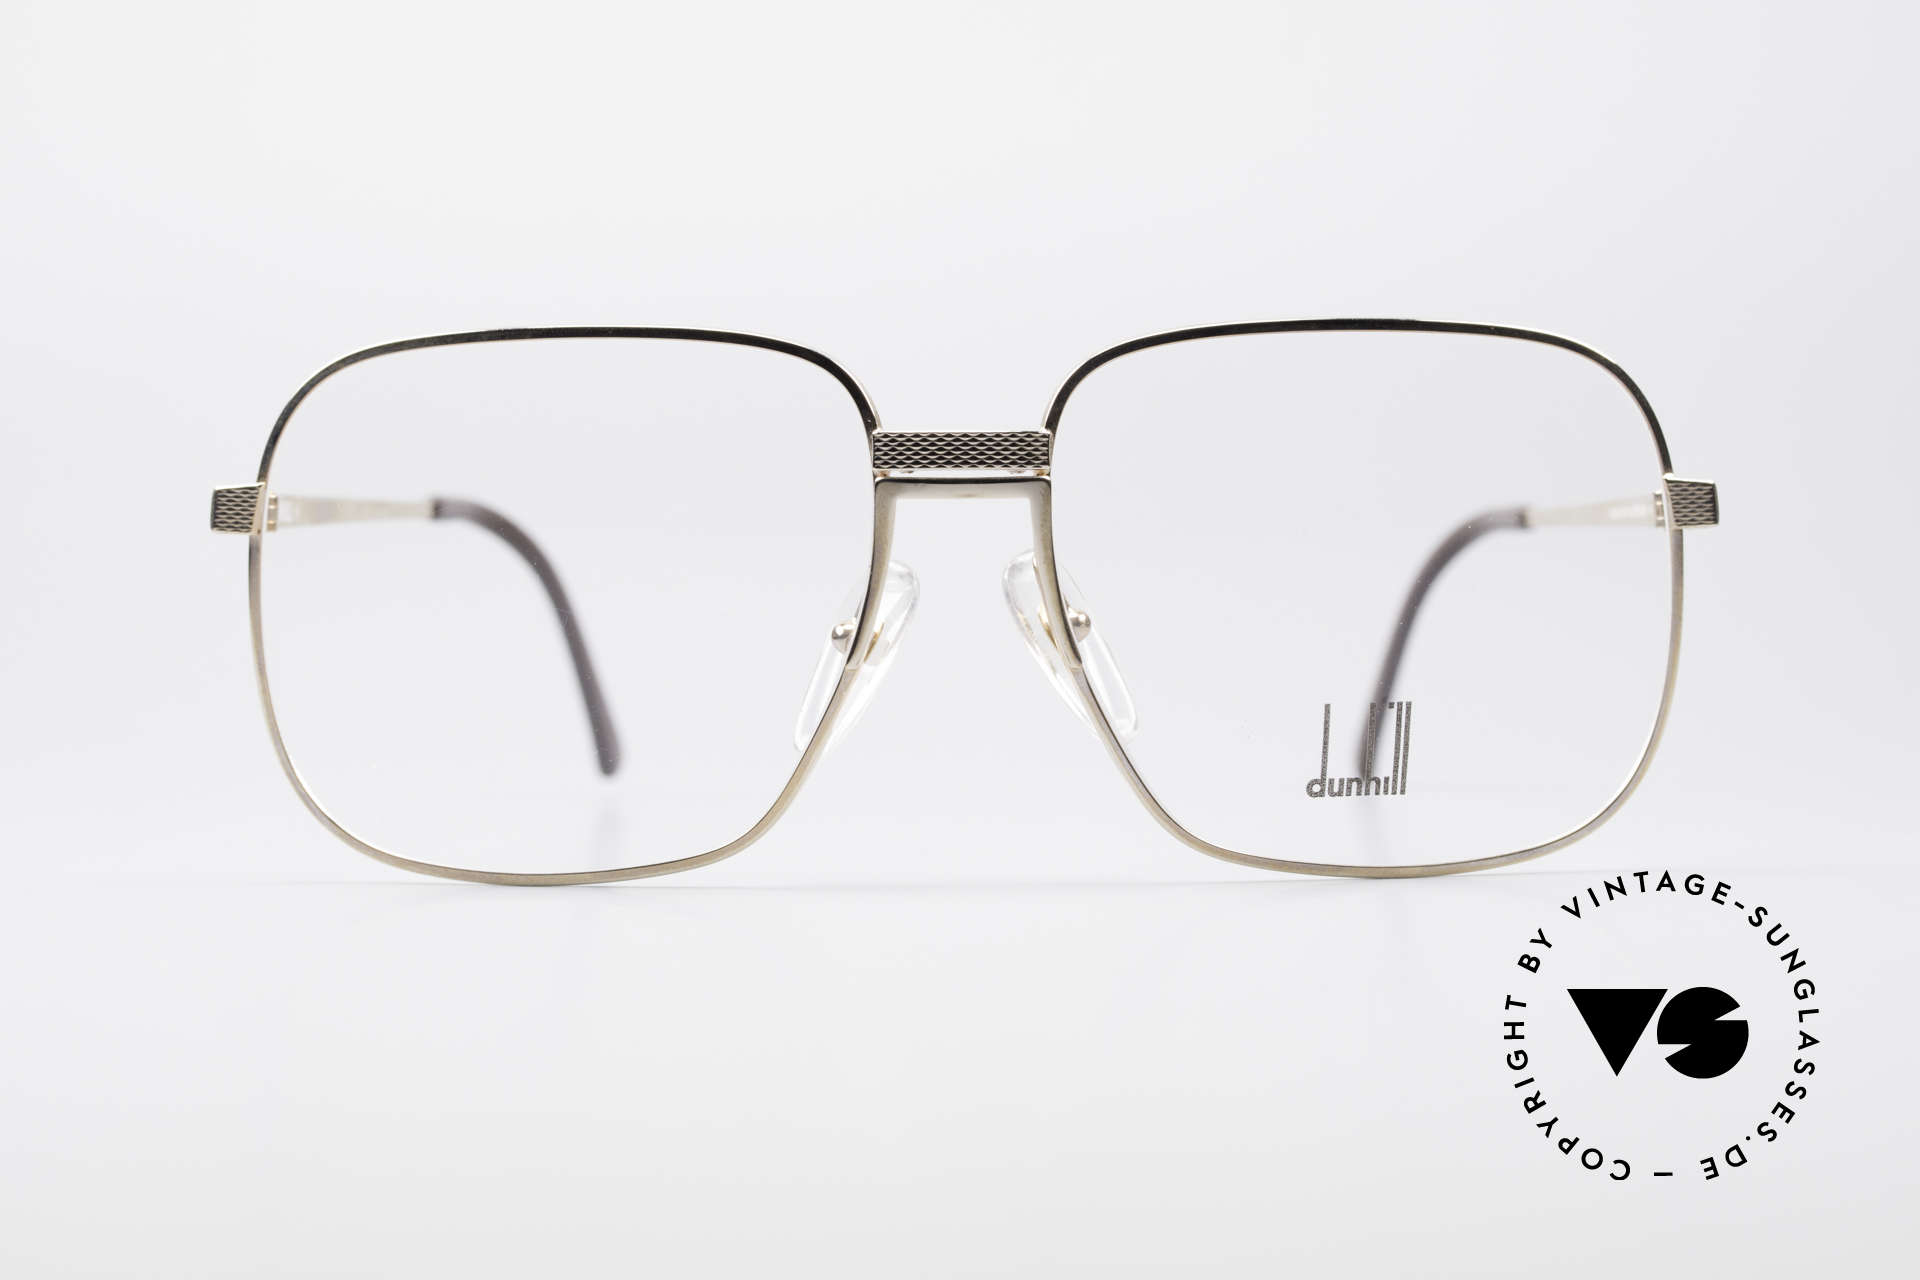 Dunhill 6090 Gold Plated 90's Eyeglasses, masterpiece of style, quality, functionality and design, Made for Men